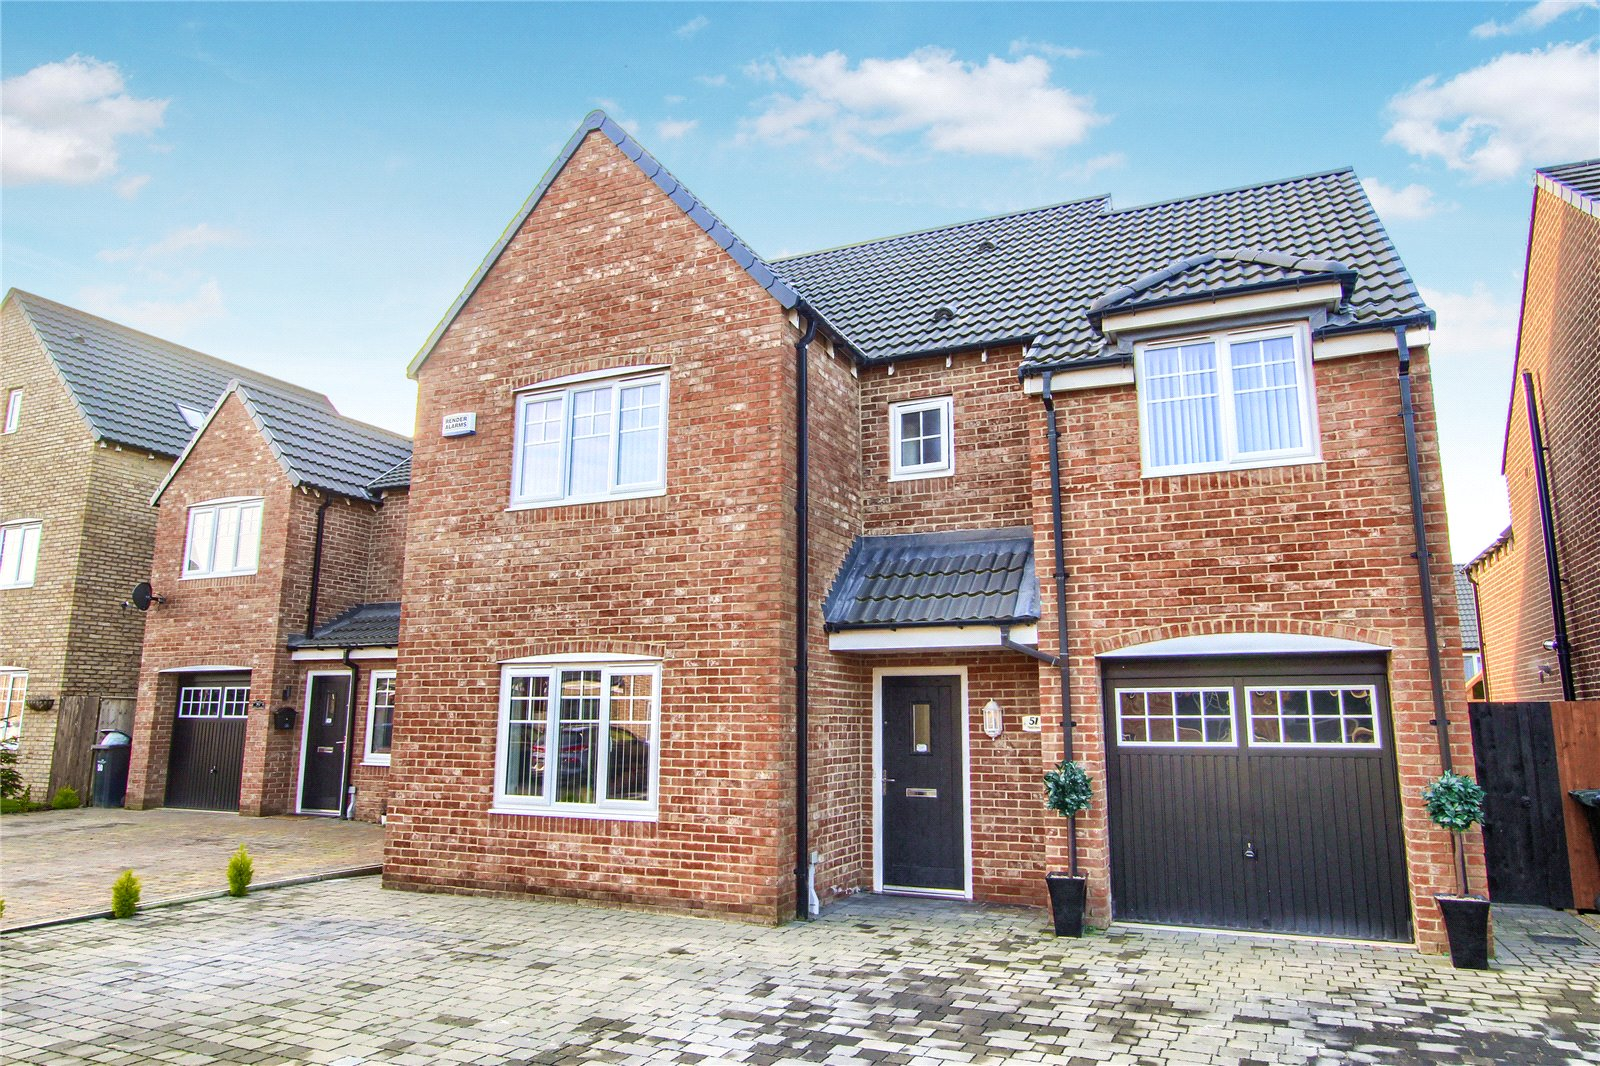 4 bed house for sale in Holt Close, Stainsby Hall Farm 1